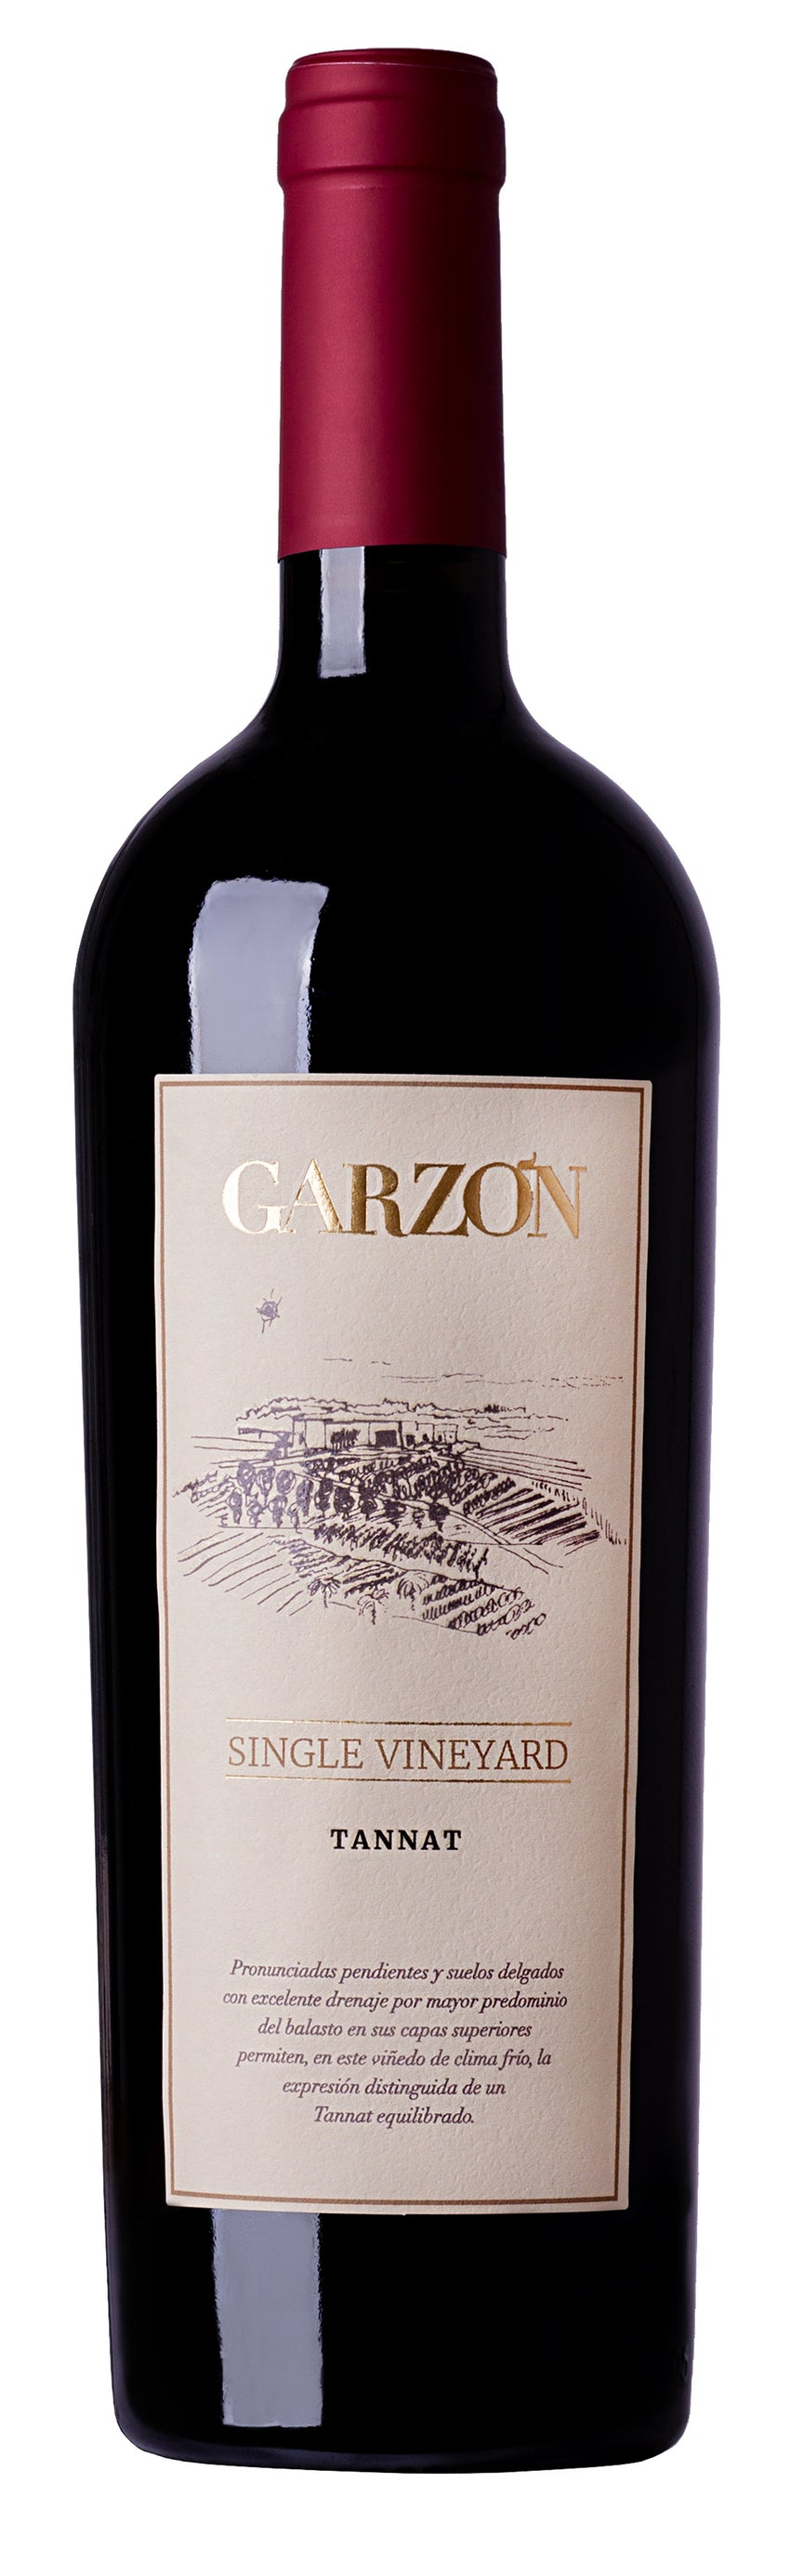 Bodega Garzón Single Vineyard, Tannat